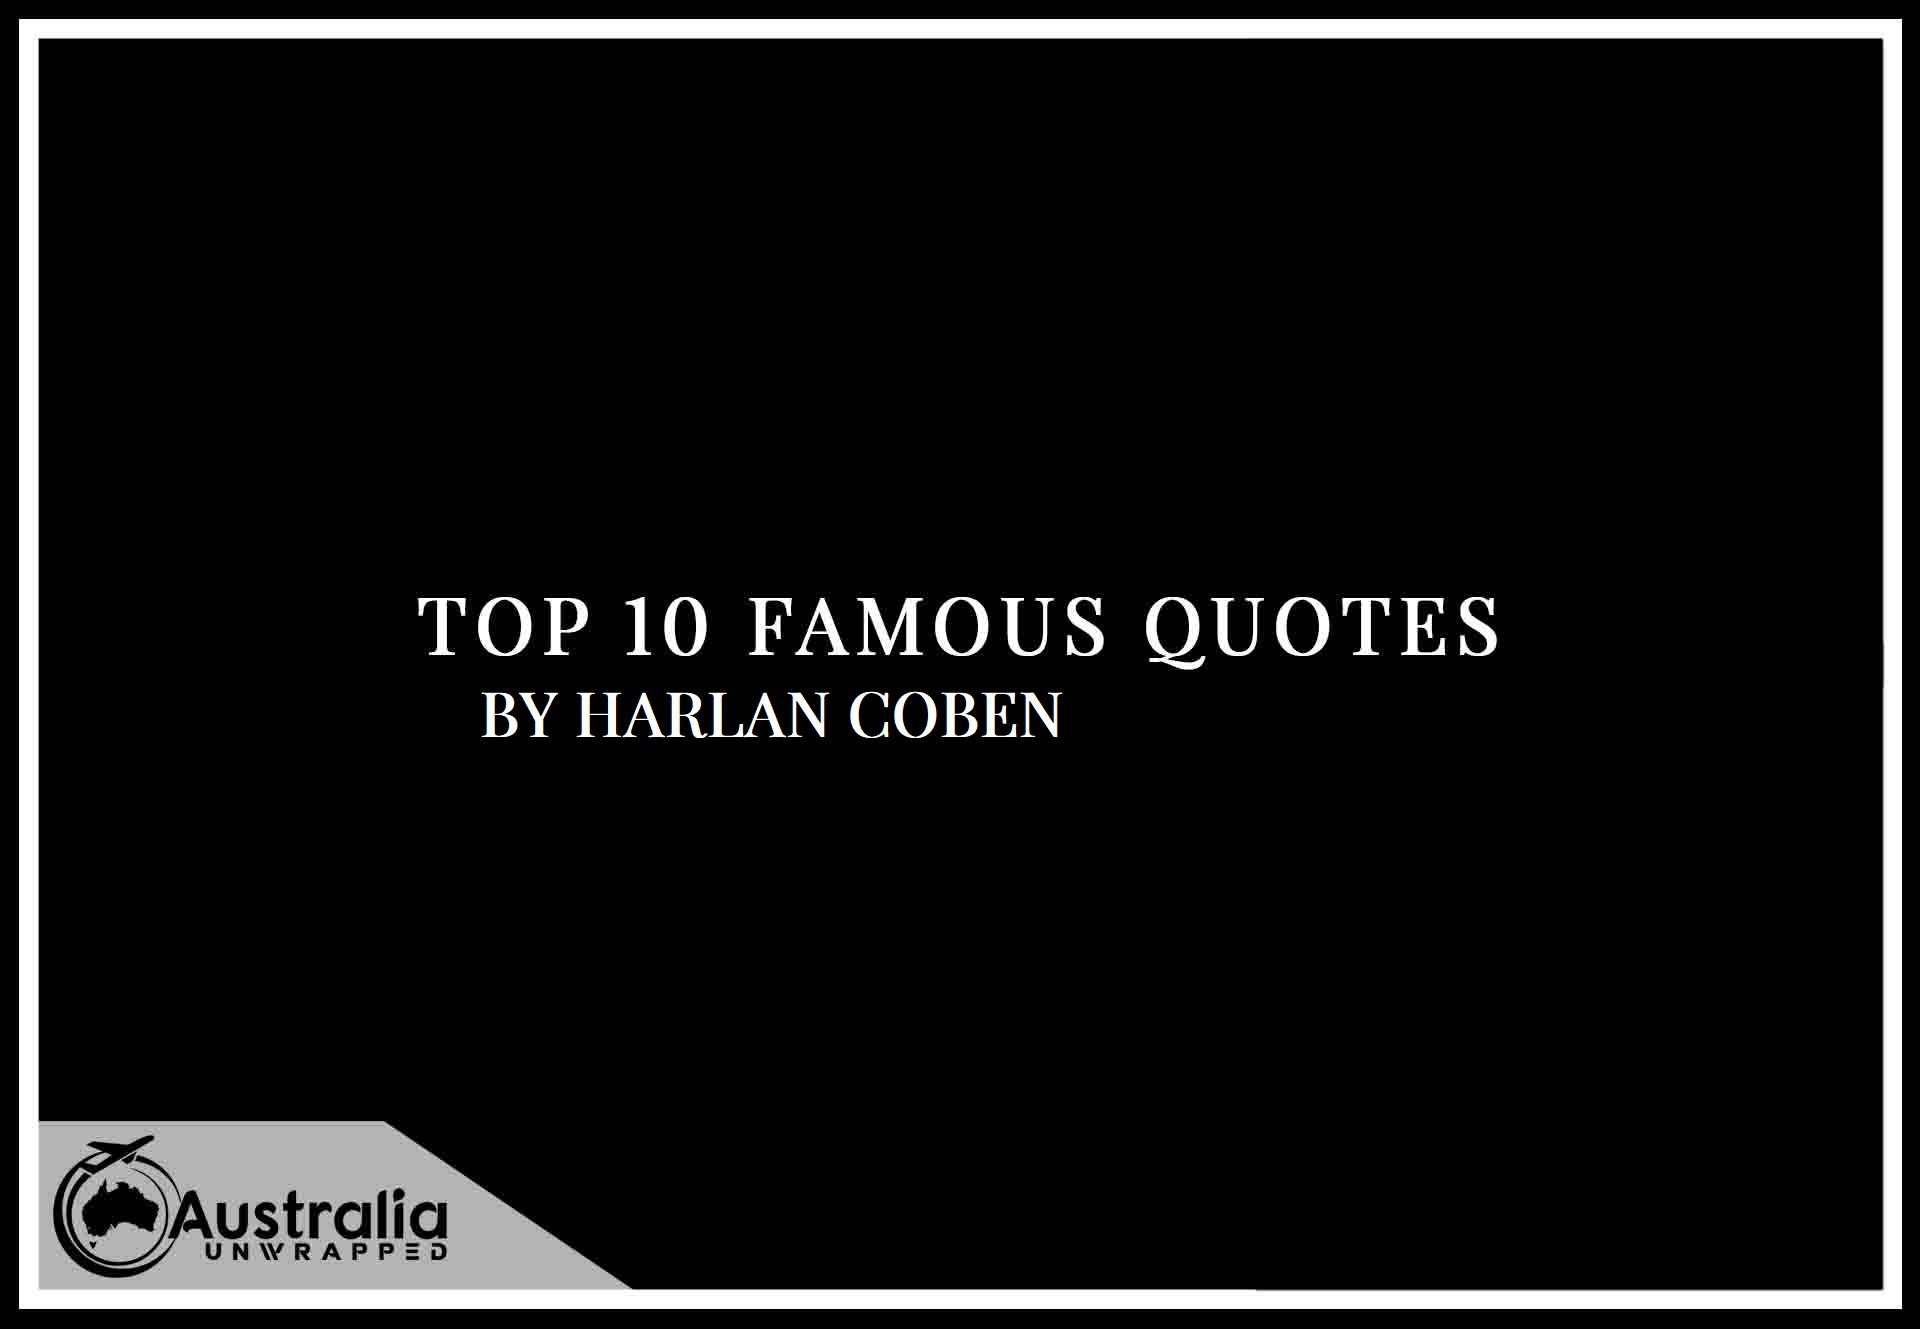 Top 10 Famous Quotes by Author Harlan Coben